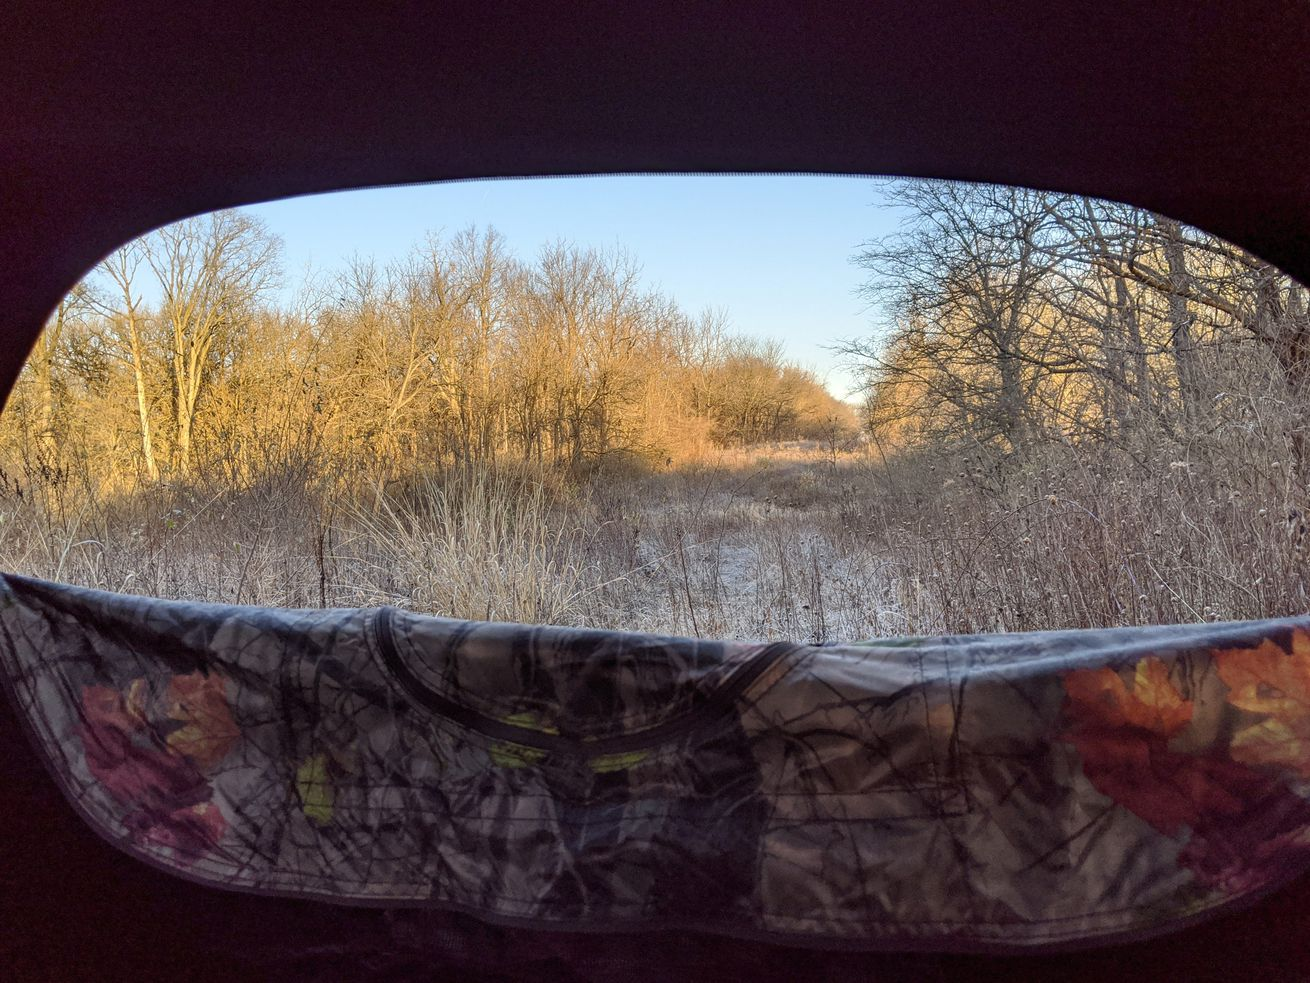 File photo scene from a deer blind during Illinois' 2020-21 deer season. Credit: Dale Bowman